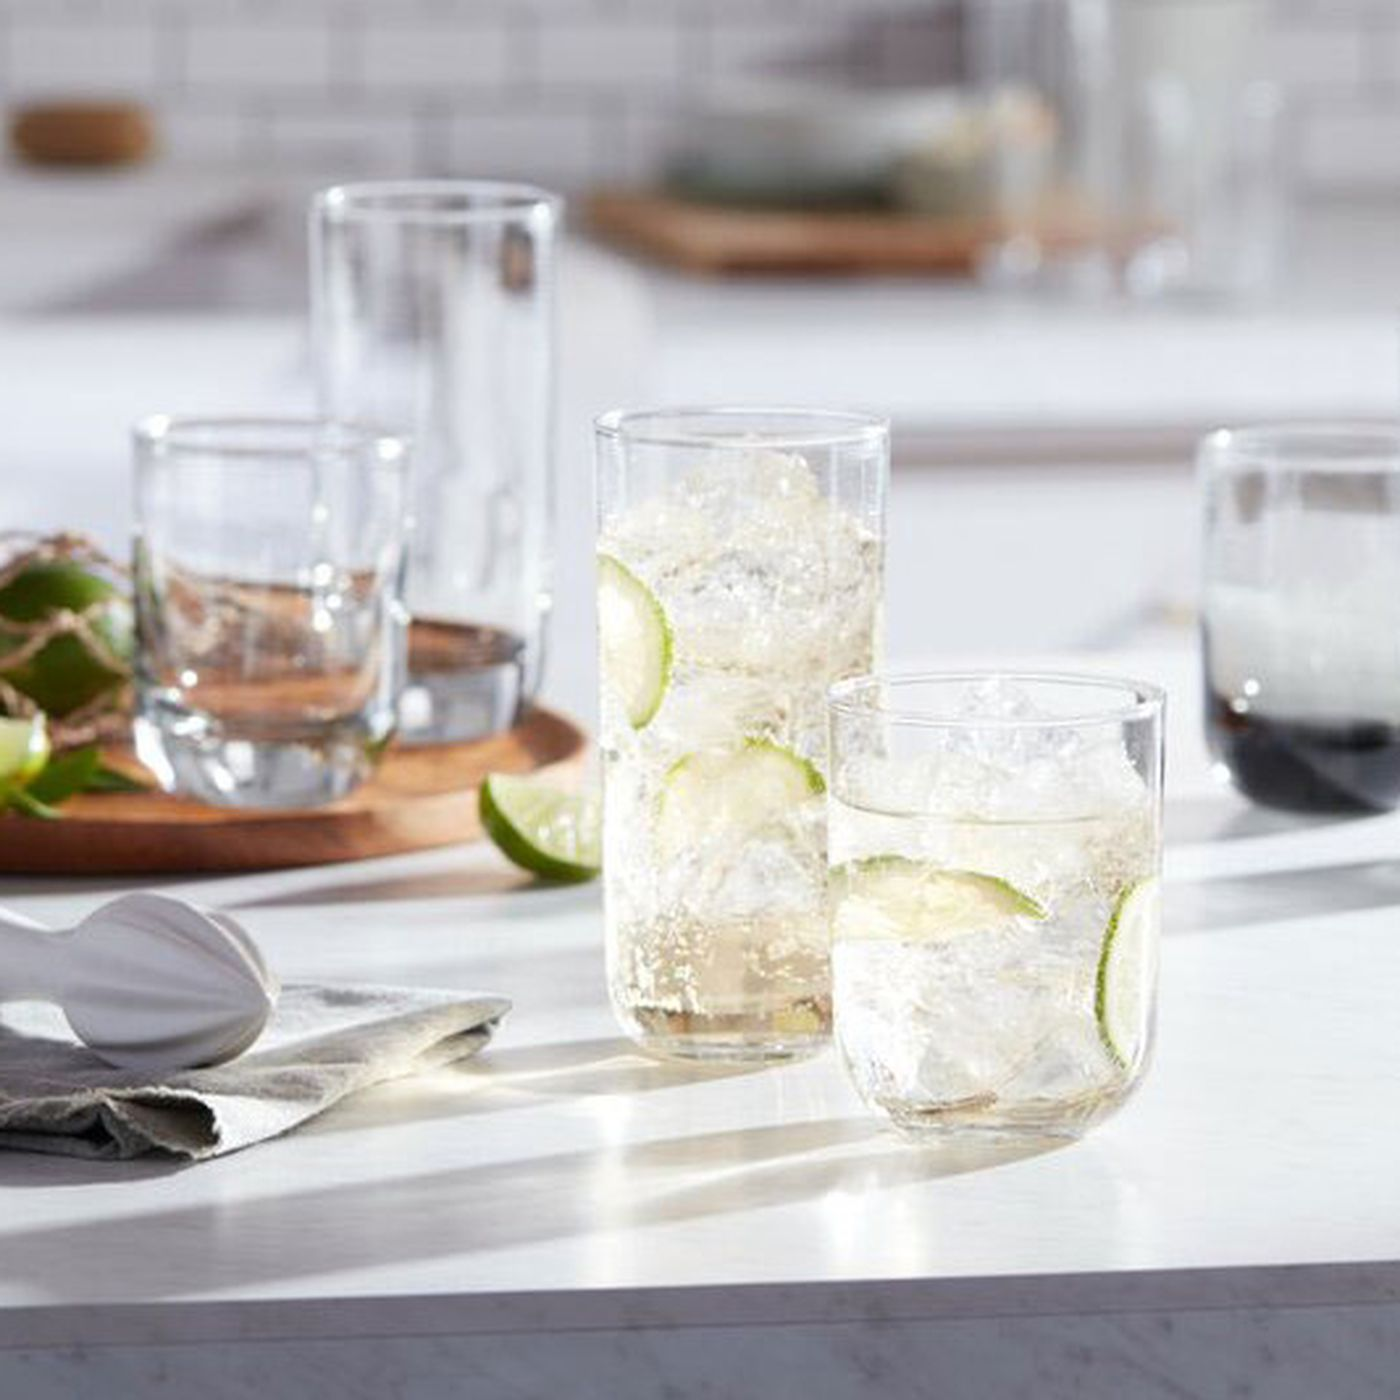 The Best Everyday Drinking Glasses According To Restaurant And Design Pros Eater